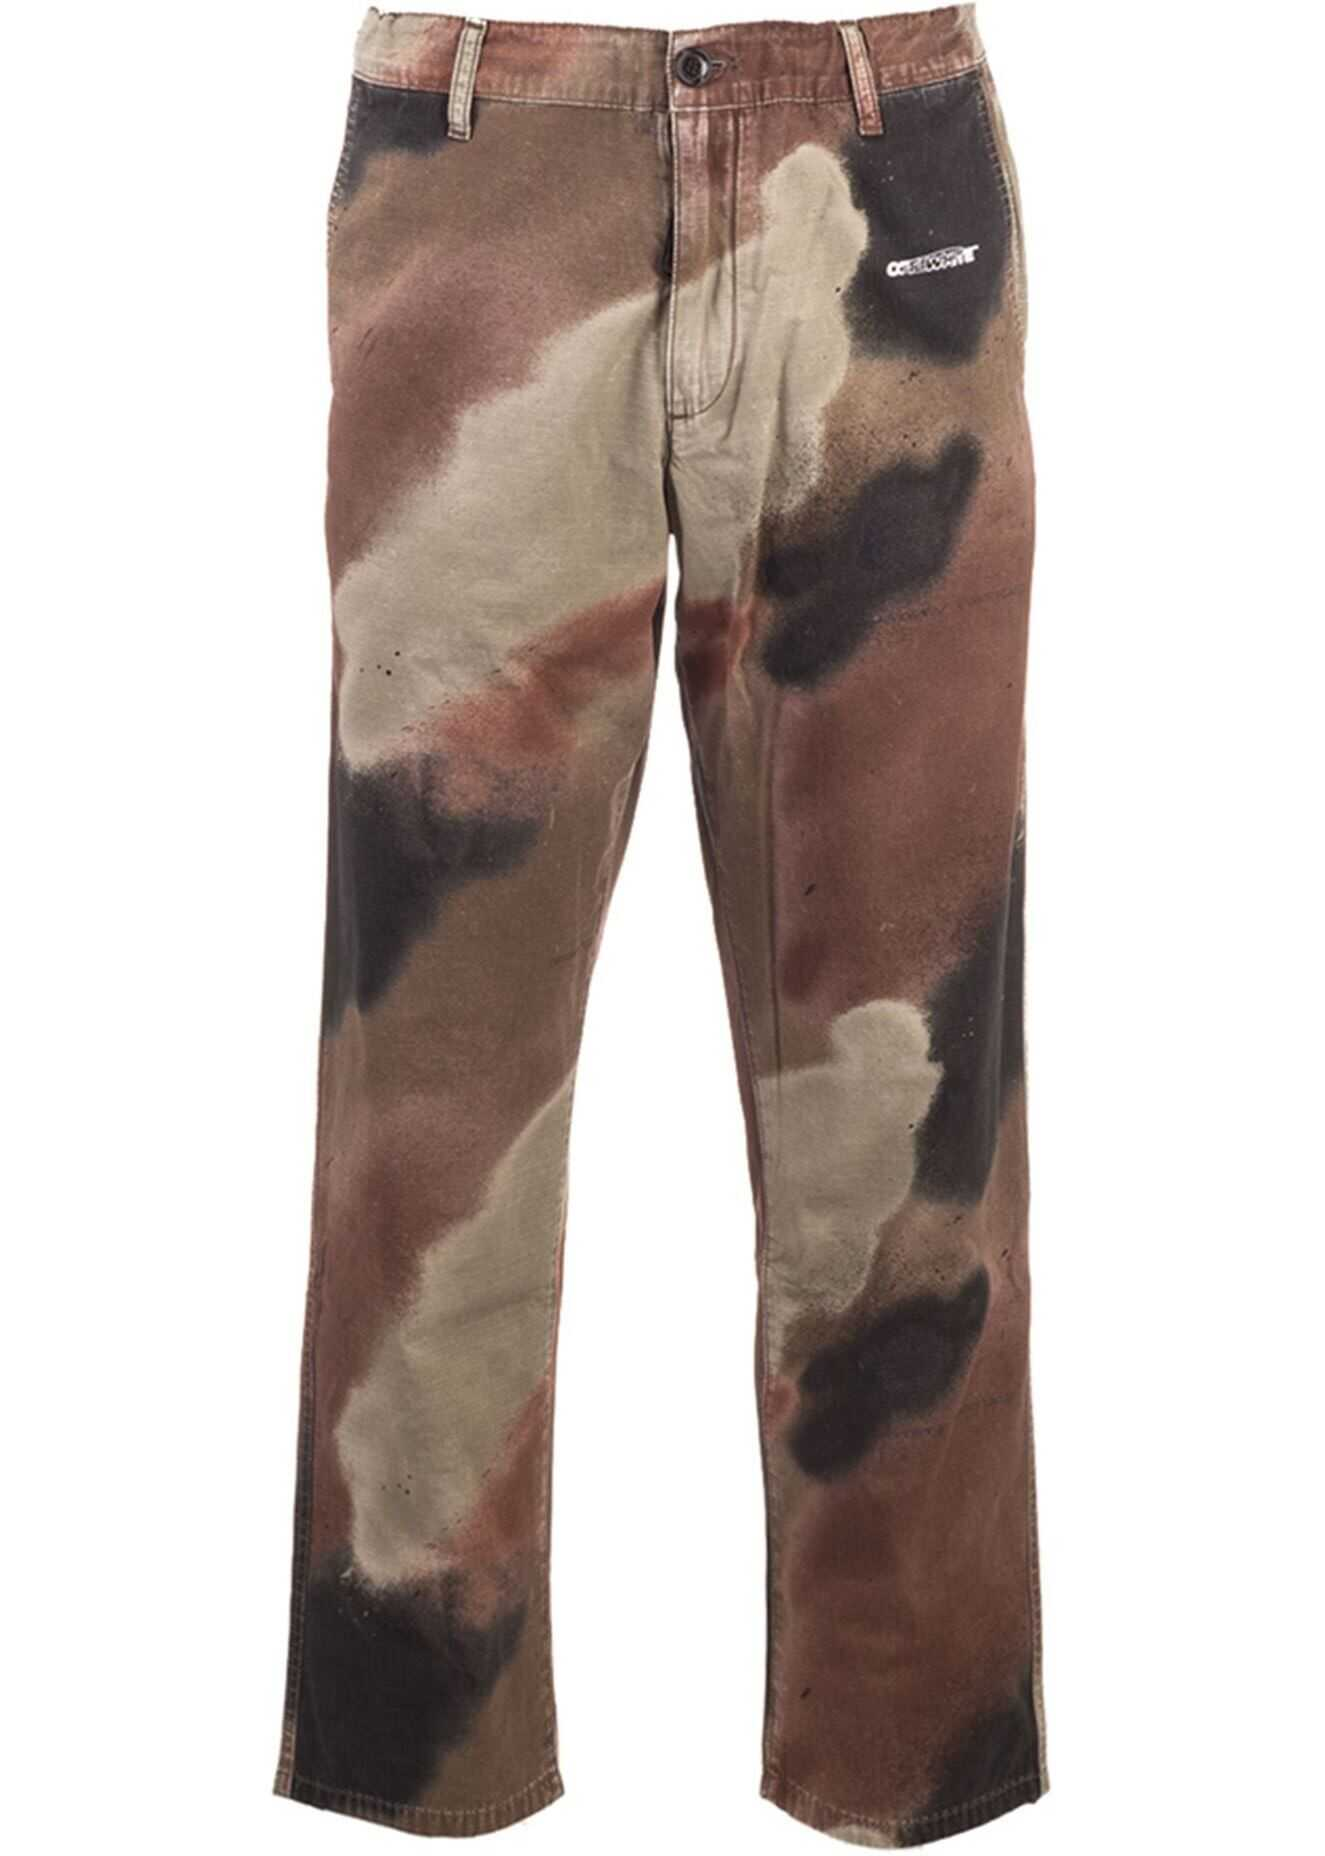 Off-White Camouflage Pants In Brown Brown imagine